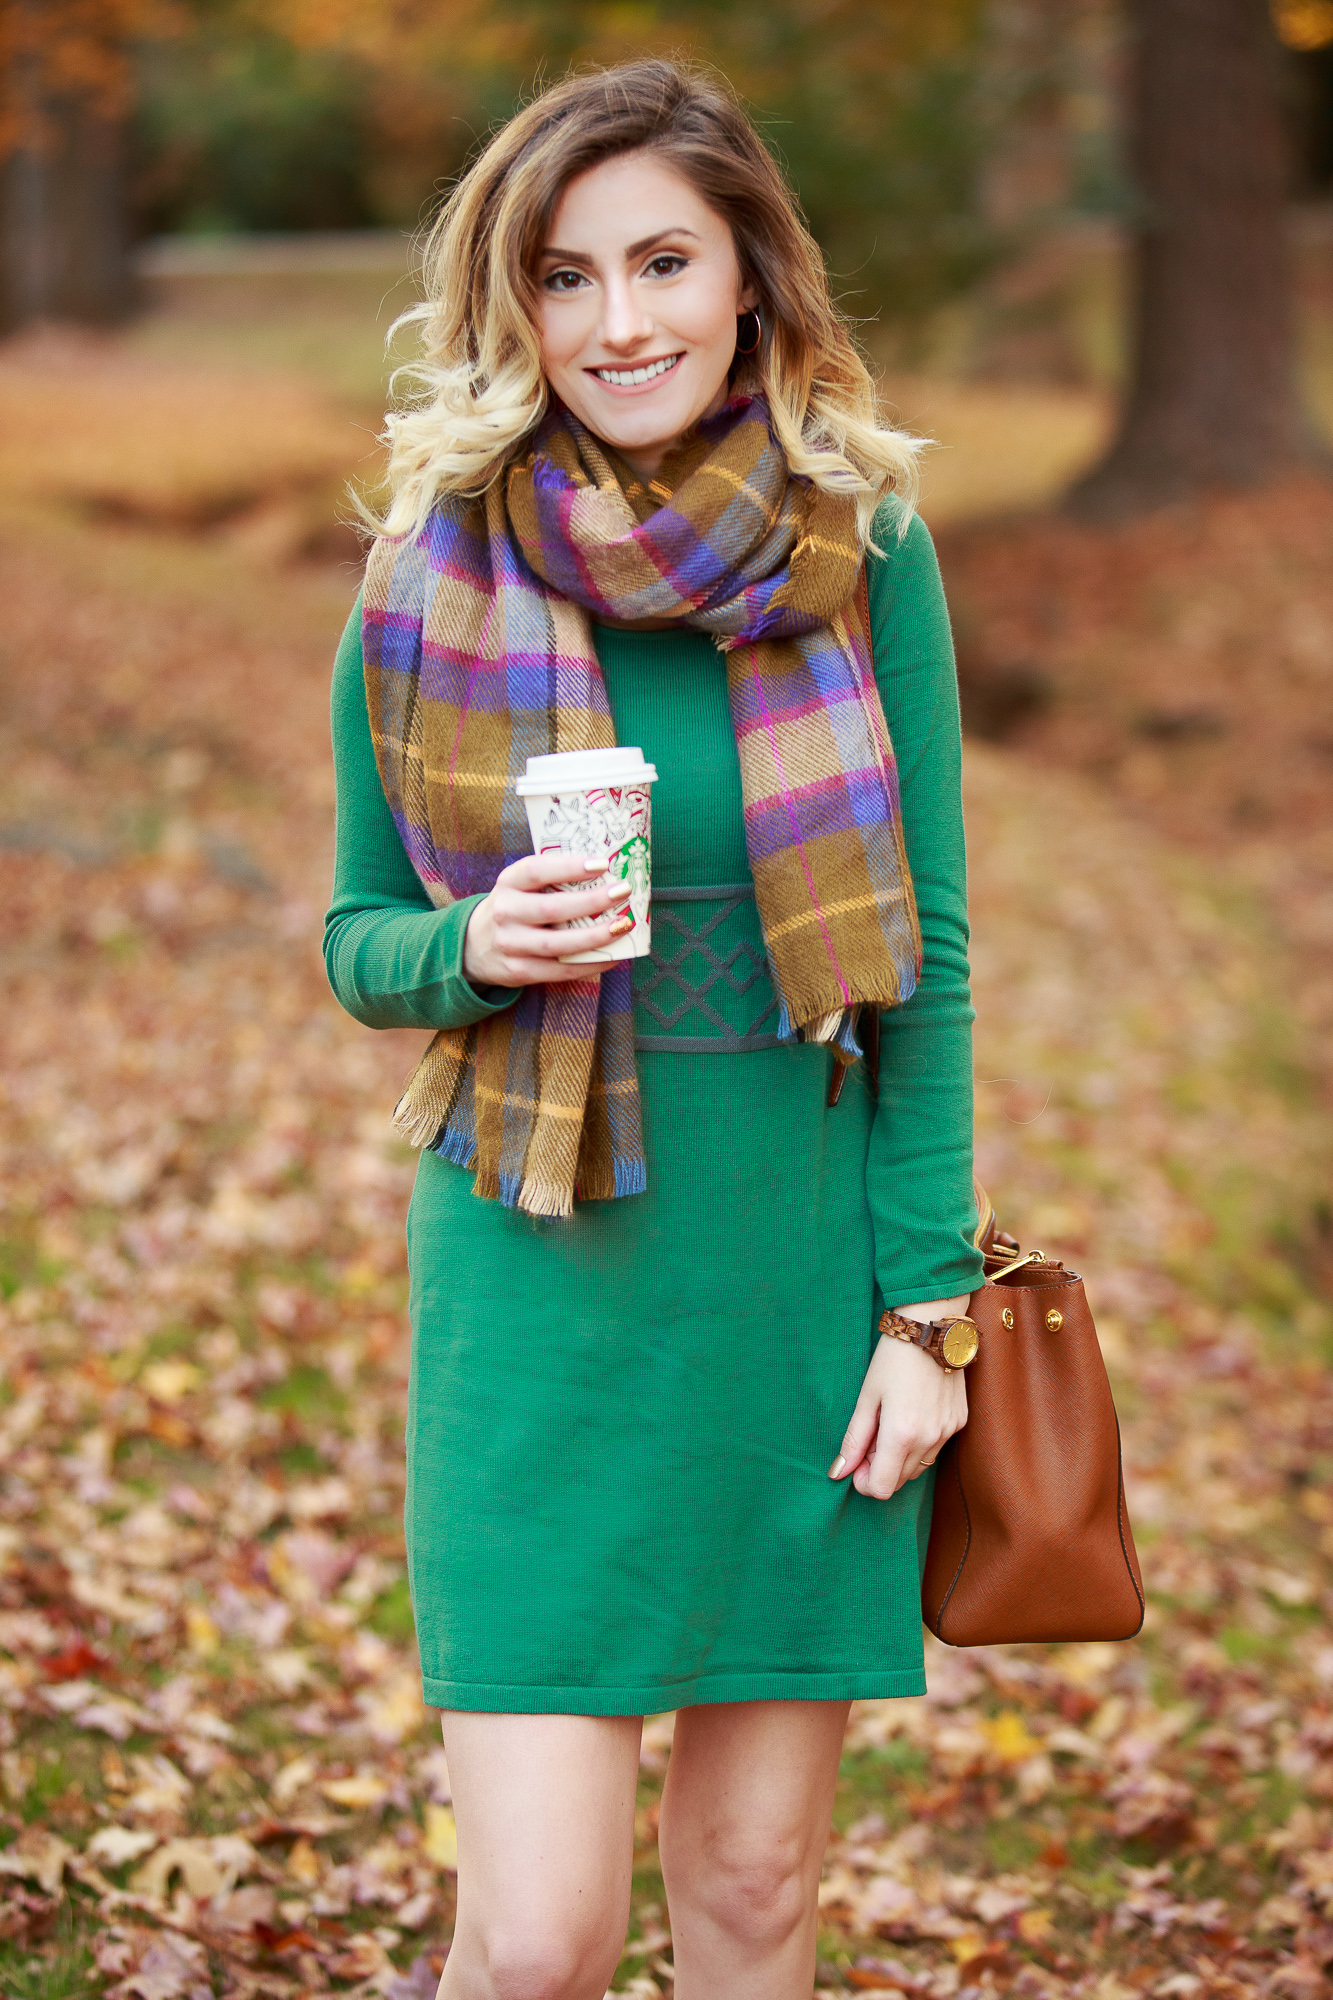 North Carolina fashion and lifestyle blogger Jessica Linn wearing a sweater dress from Aventura. Aventura clothes are made from organic sustainable materials promoting sustainable fashion. Also wearing fringe booties from Forever21, a green plaid scarf from Target, and a Michael Kors purse and a JORD wood watch.